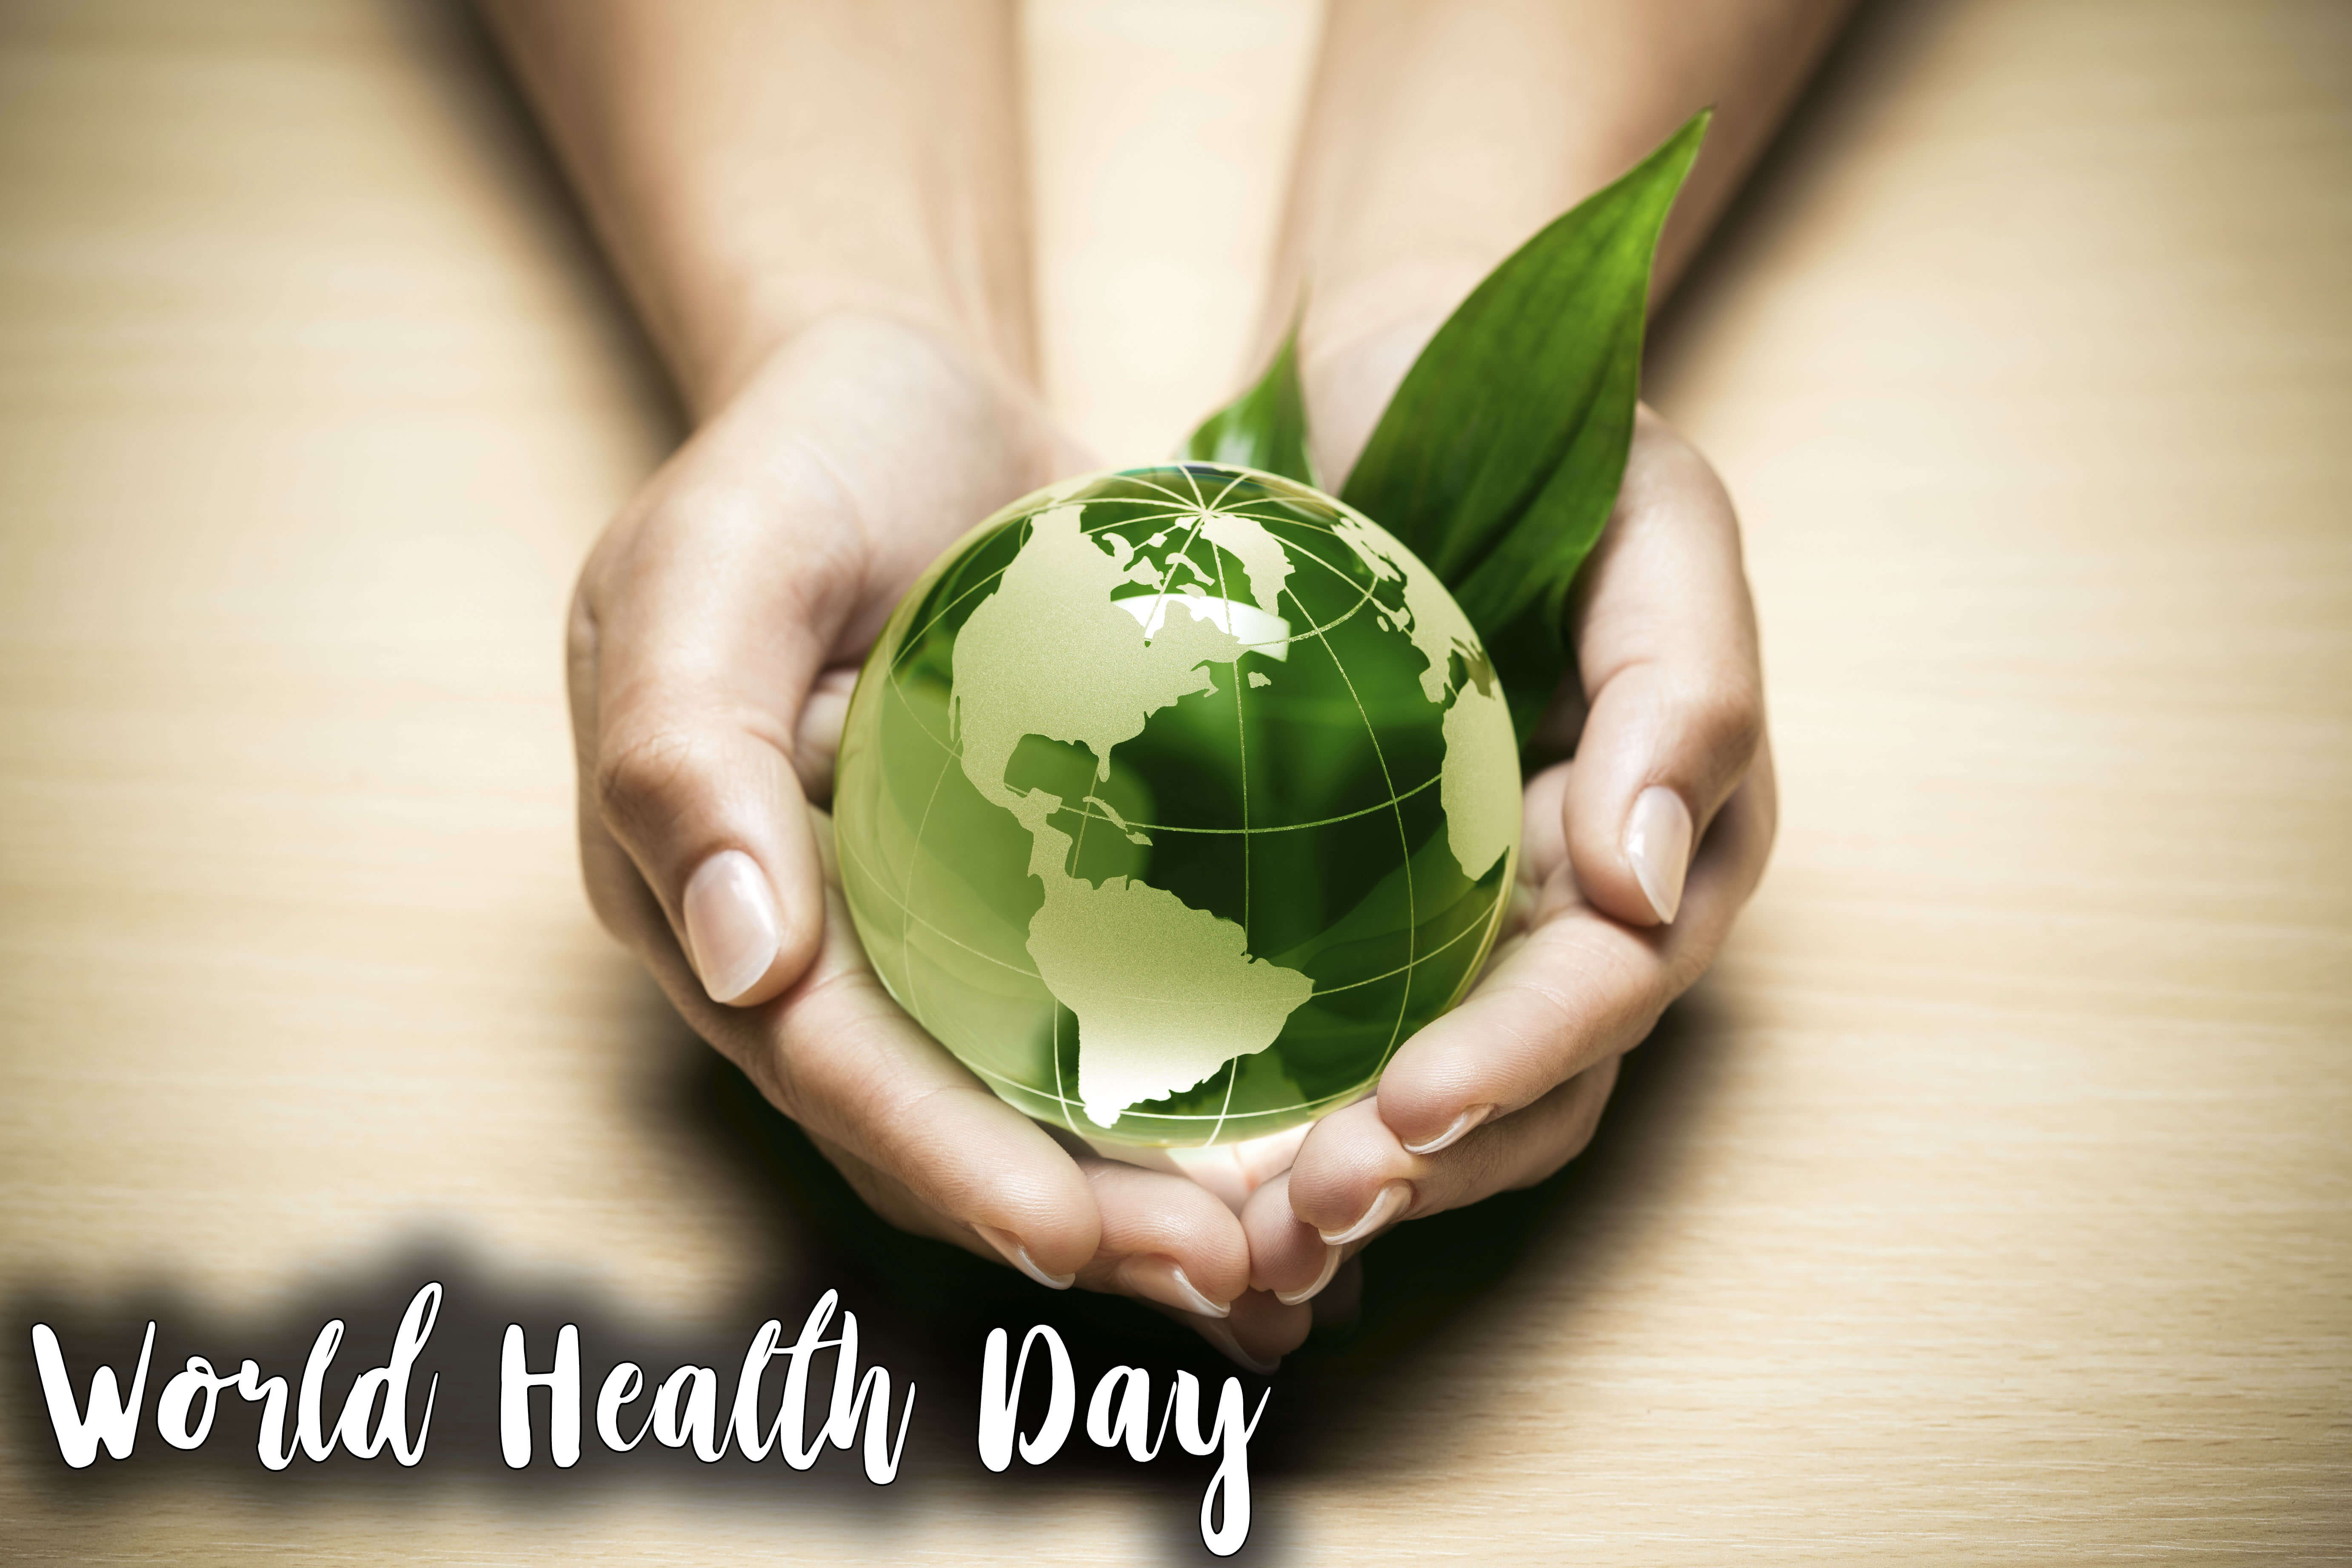 happy world health day protect save globe on hands hd wallpaper